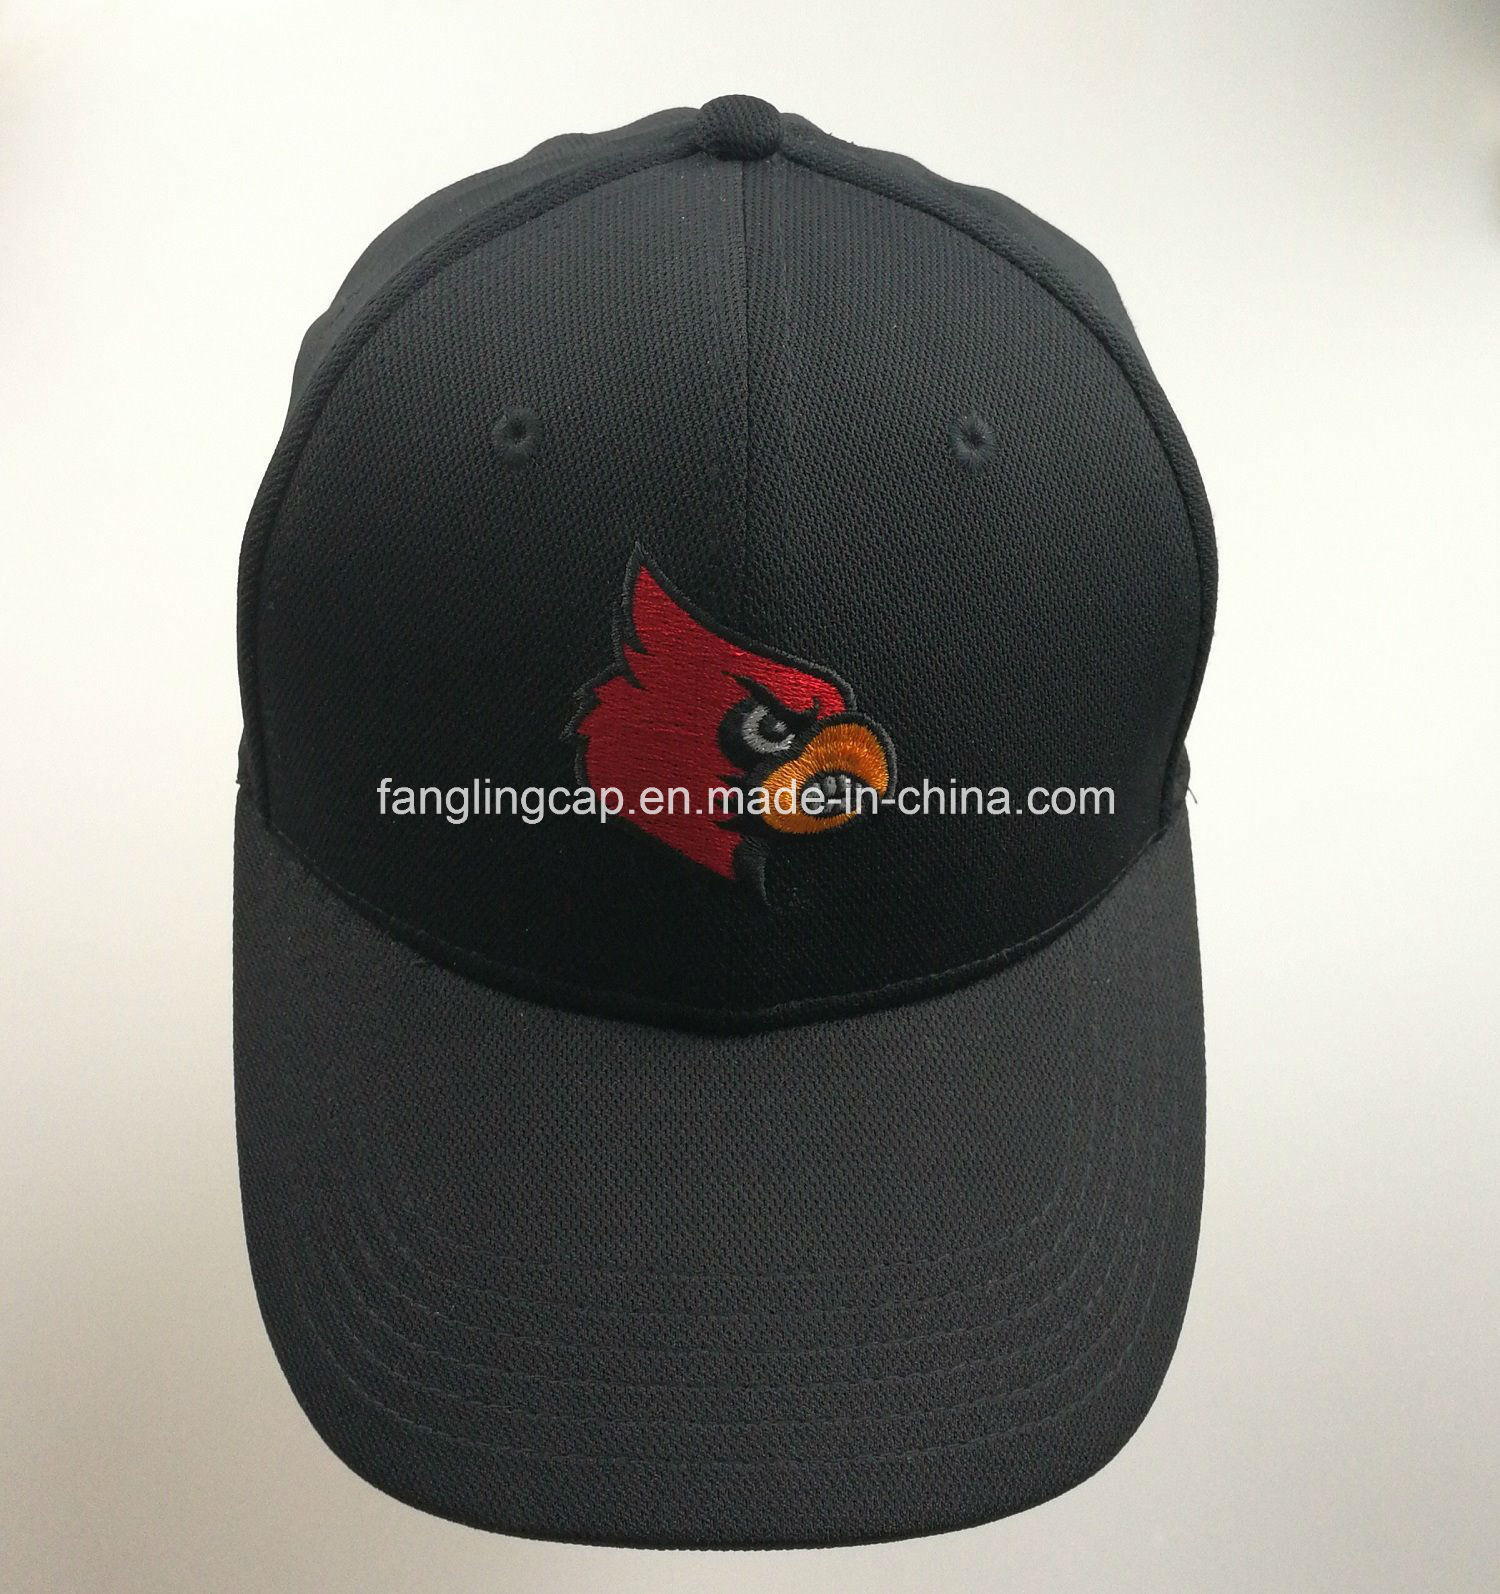 026d8a6289687 China 6 Panel Embroidered Flexfit Caps Wholesale Hats Fexfit Baseball Cap  Closed Back